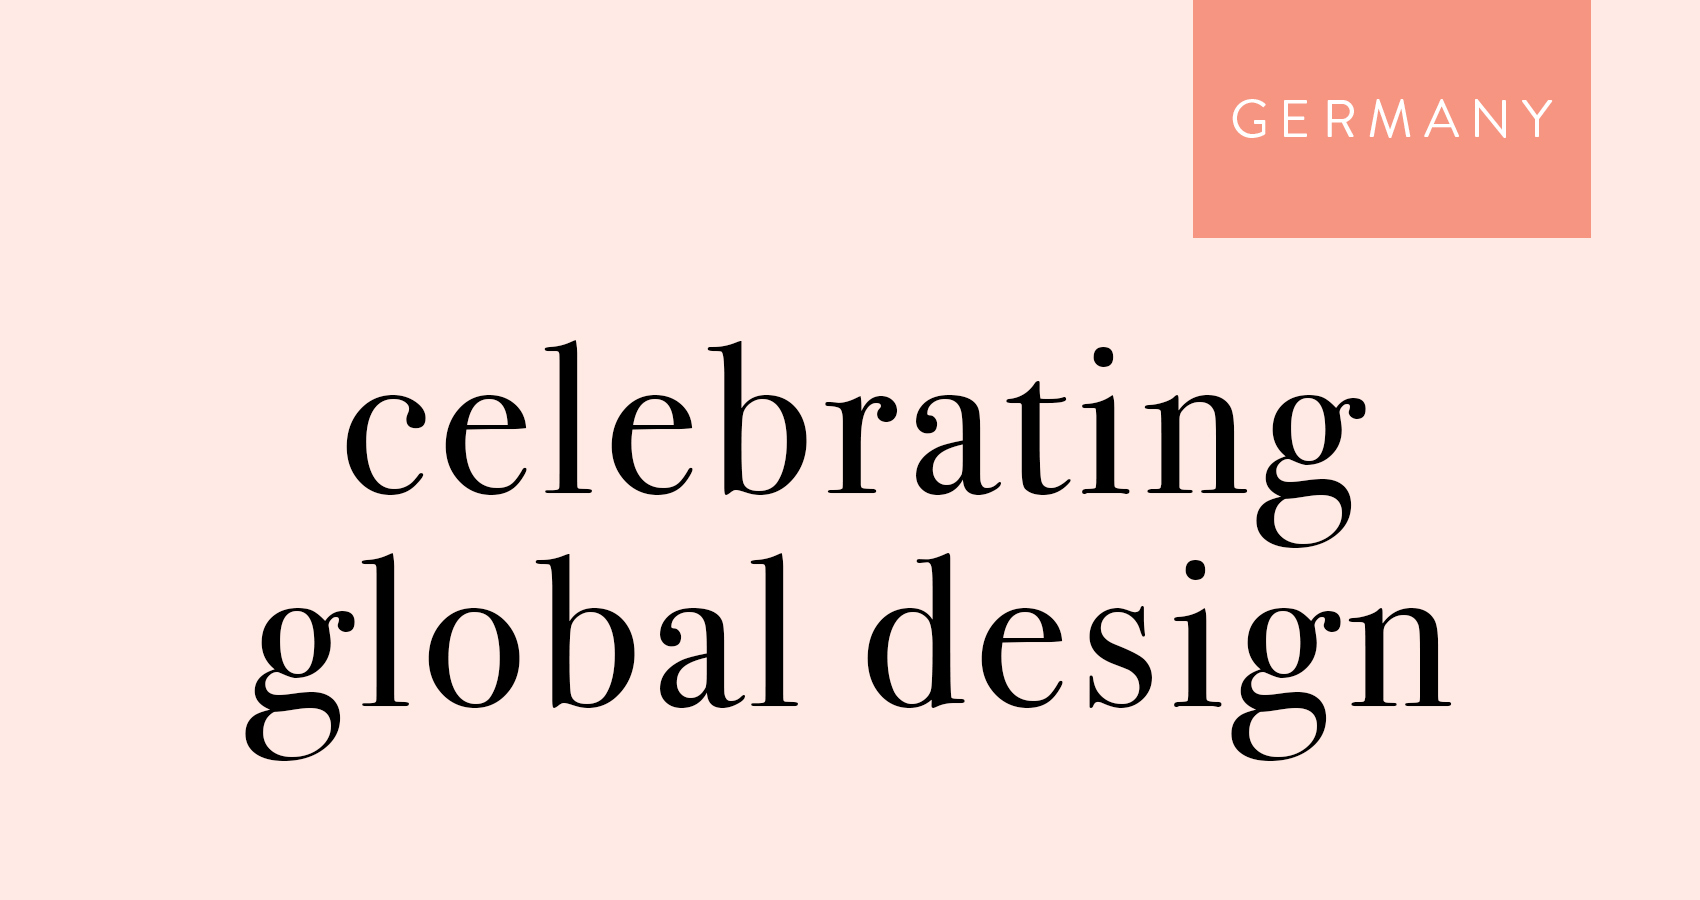 Celebrating Global Design: Germany, Design*Sponge